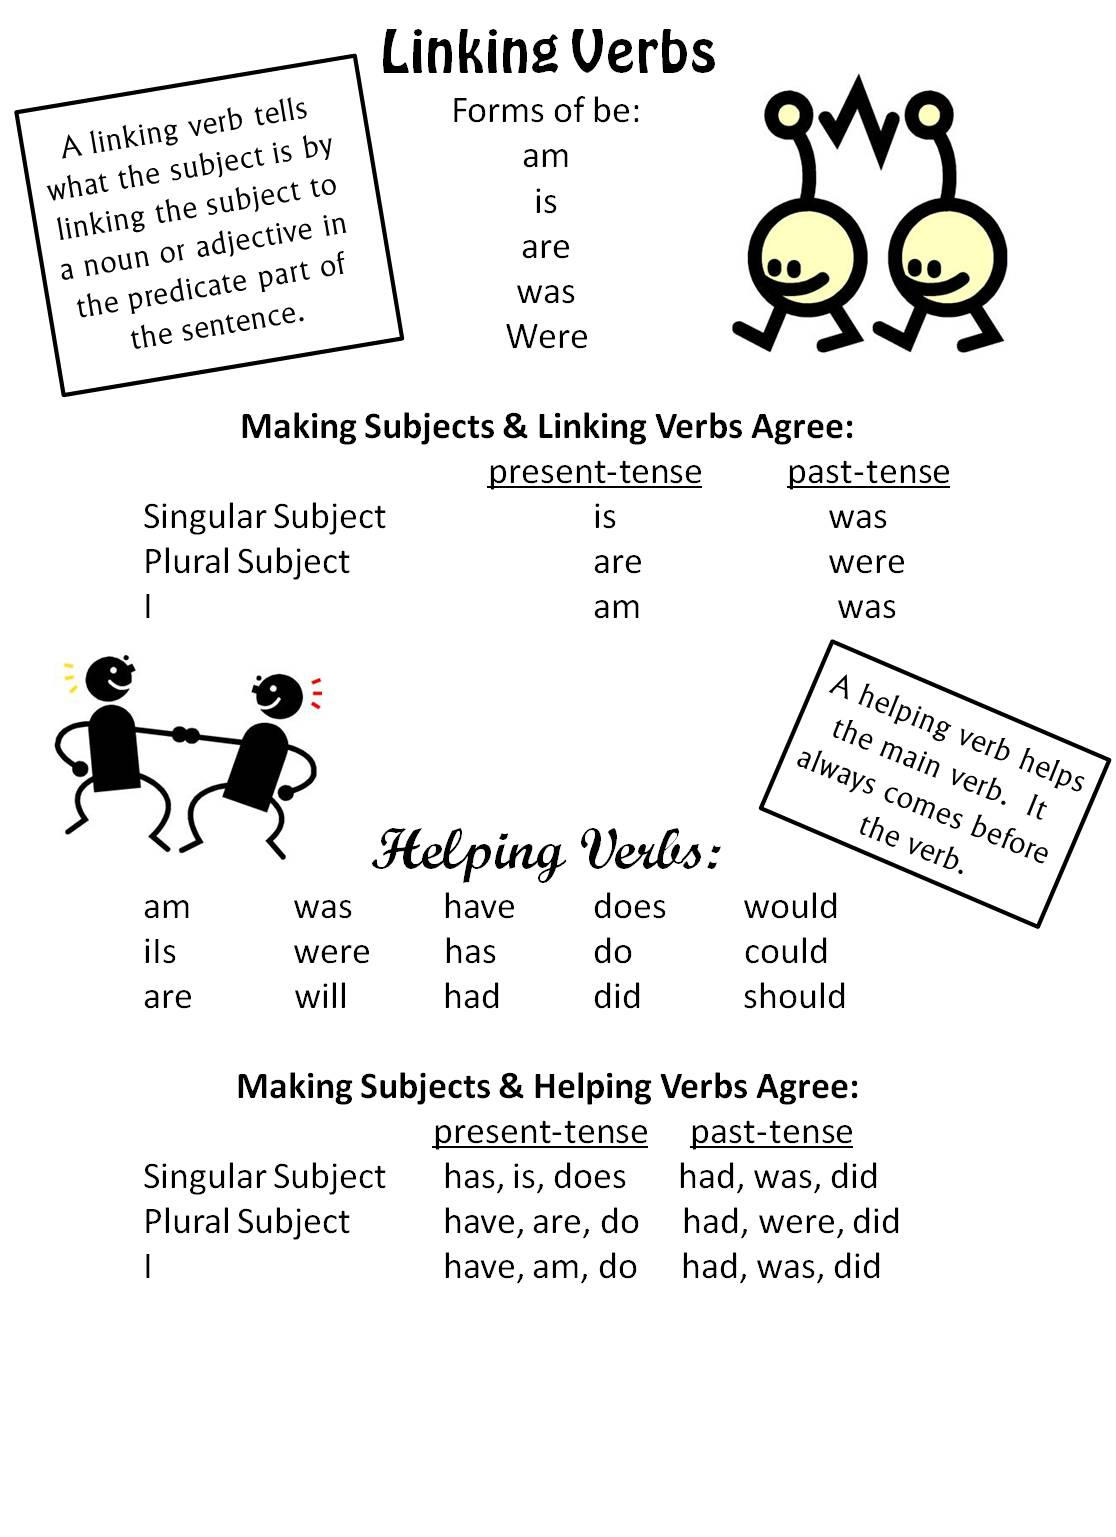 Free L K G Verb Nd Help G Verb Reference Poster K Thy Hutto